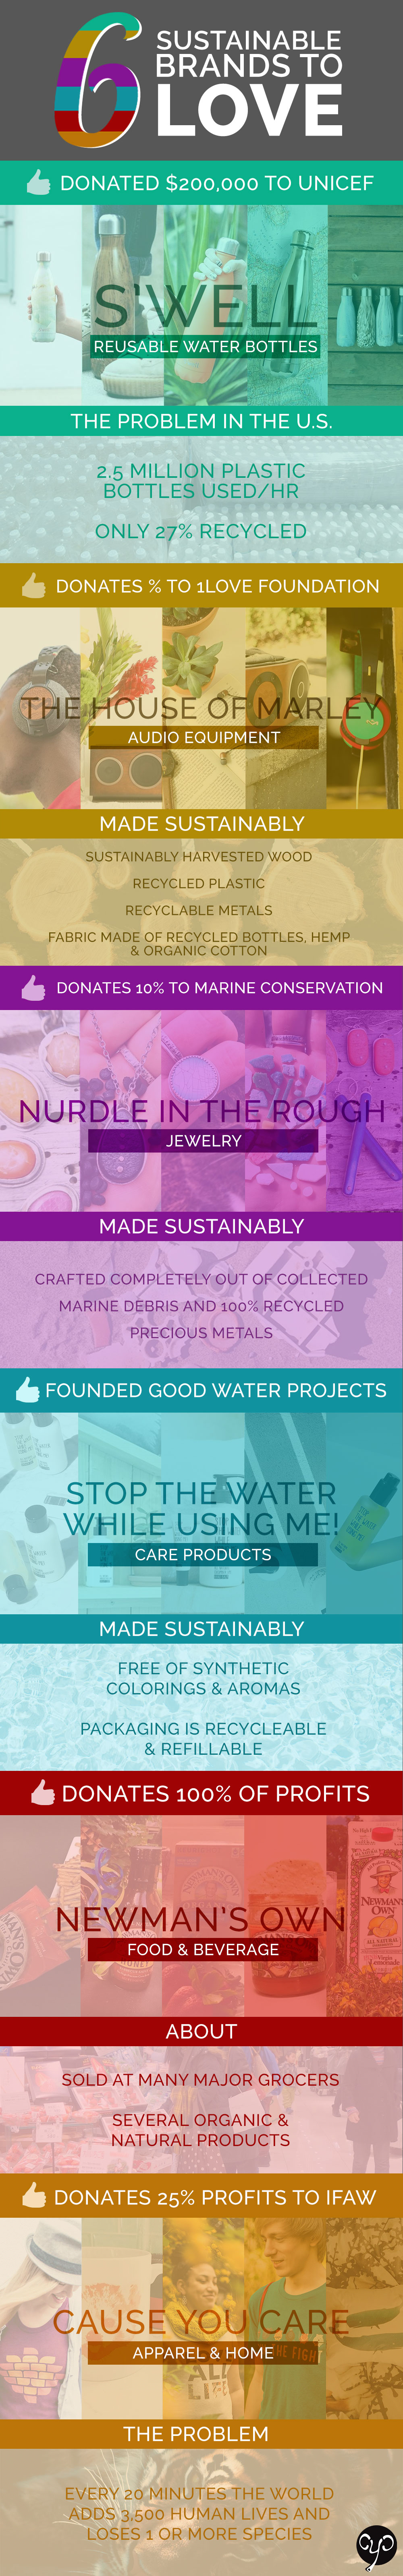 6 sustainable brands that give back | Cause You Care